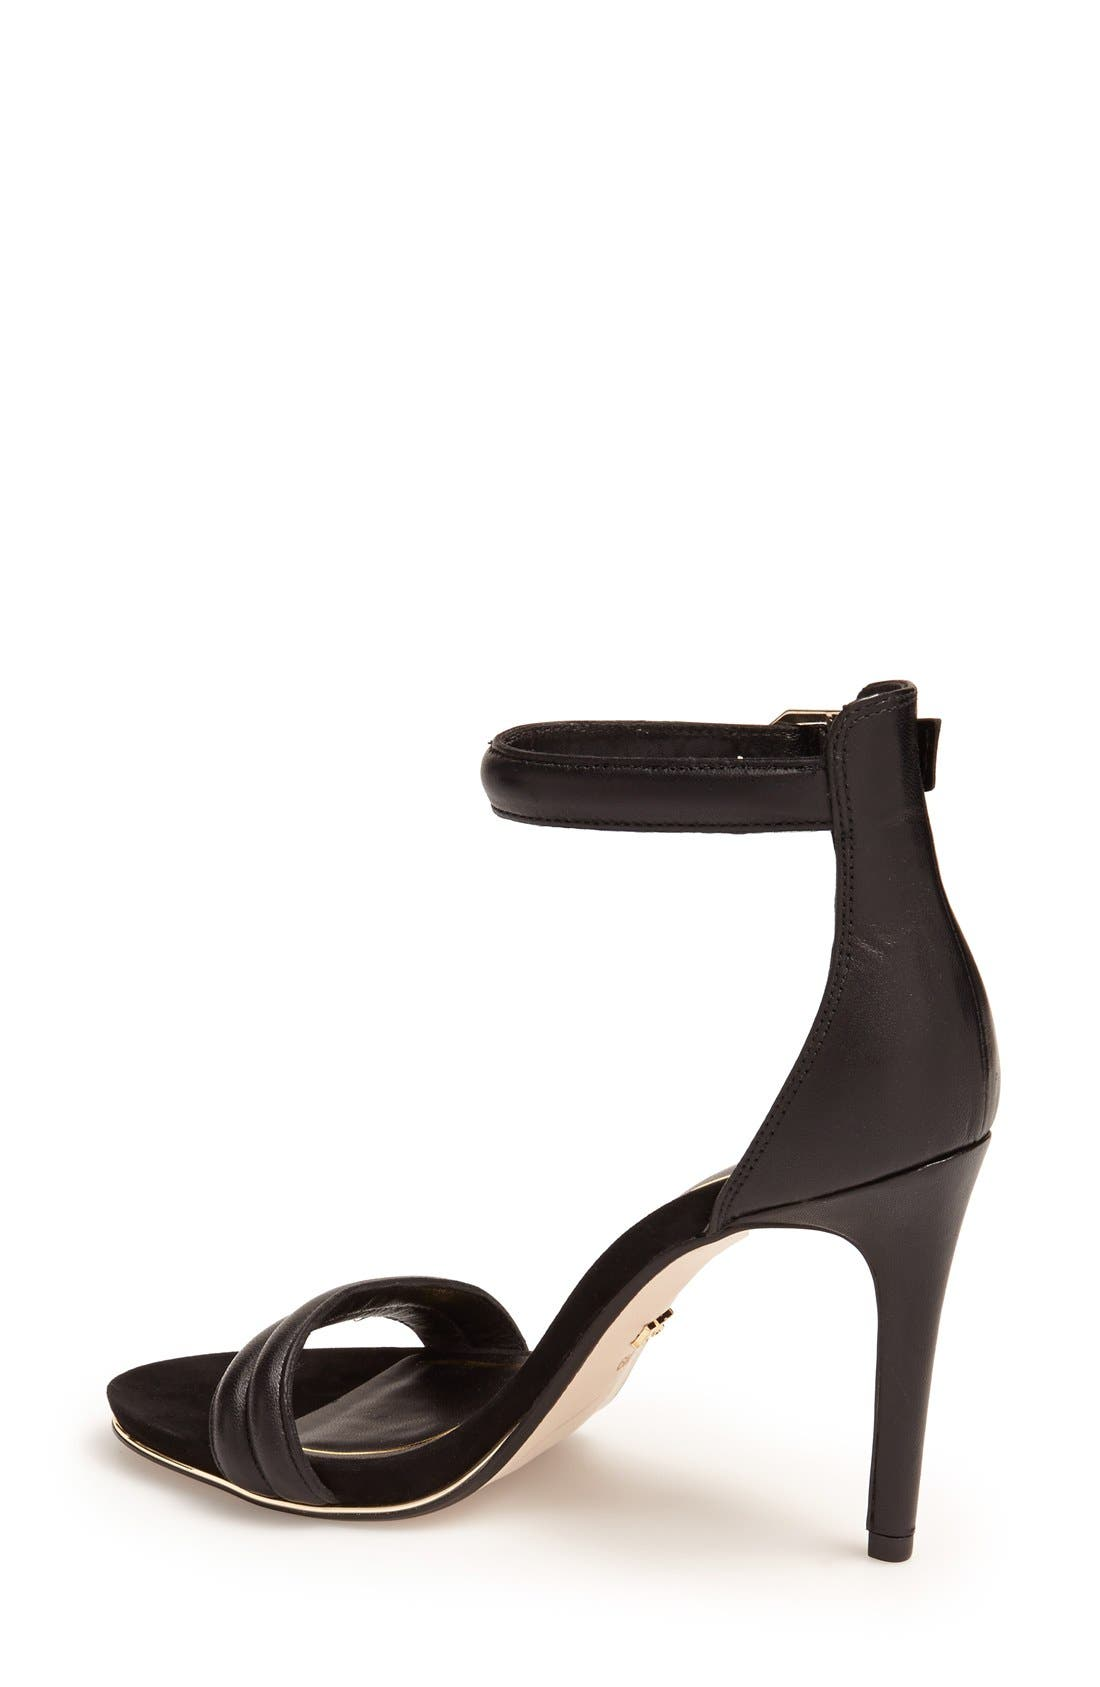 'Brooke' Ankle Strap Sandal,                             Alternate thumbnail 2, color,                             Black Leather